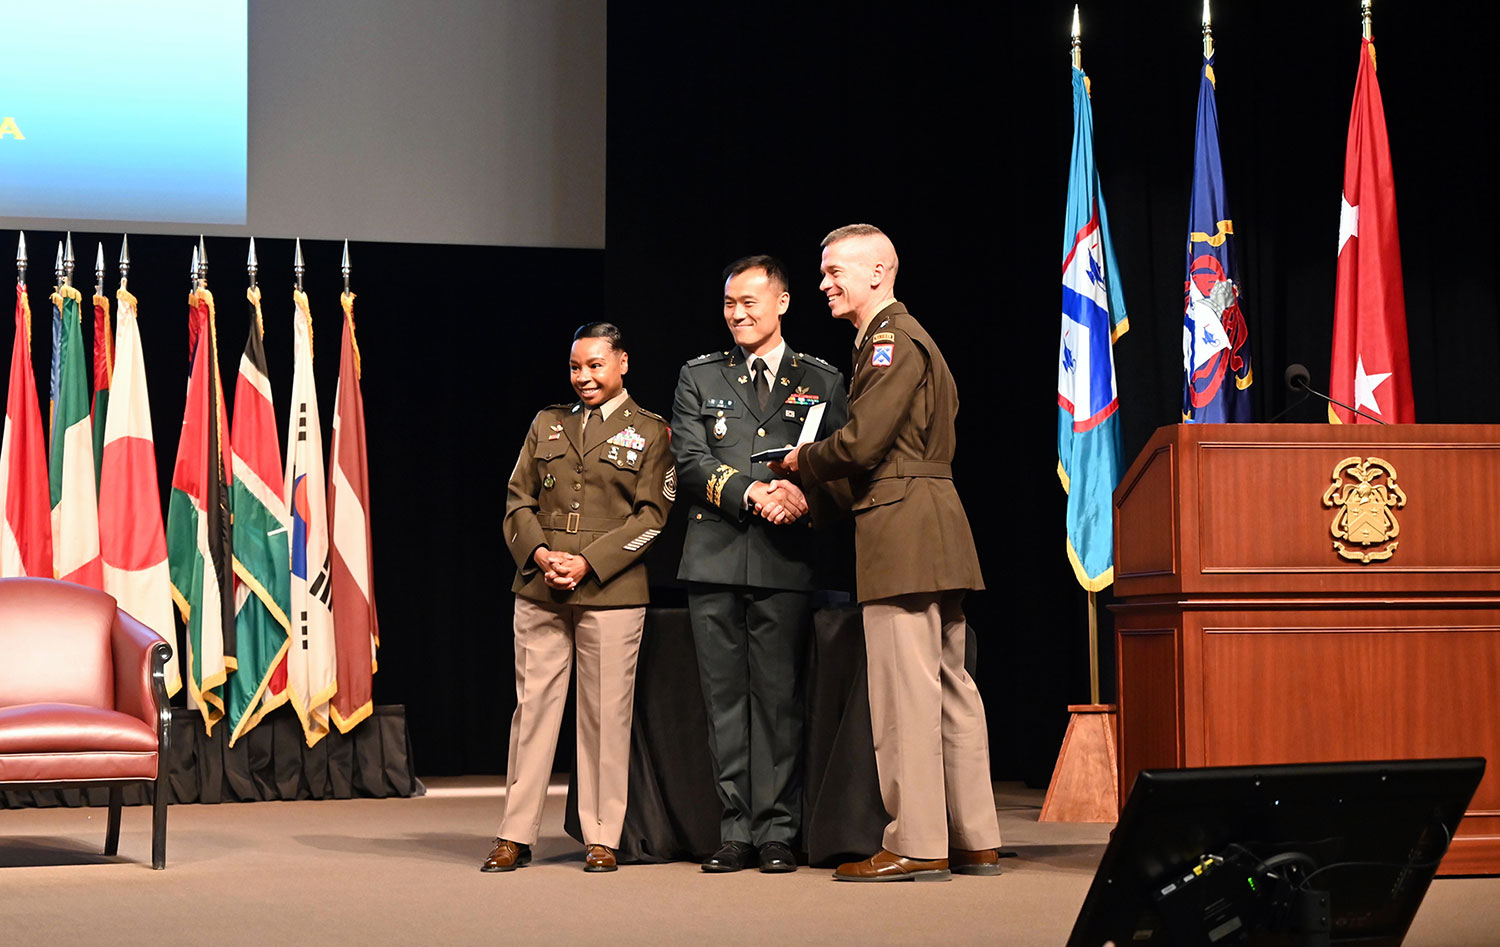 Maj. Gen. Donn H. Hill, Deputy Commandant of the Command and General Staff College, Provost-Army University, and Deputy Commanding General-Education for the Combined Arms Center, and Command and Command Sgt. Maj. Faith Alexander, Senior Enlisted Advisor to the Provost, presented the graduation badges to the graduating international officers of the CGSC Class of 2021 on June 17, 2021.